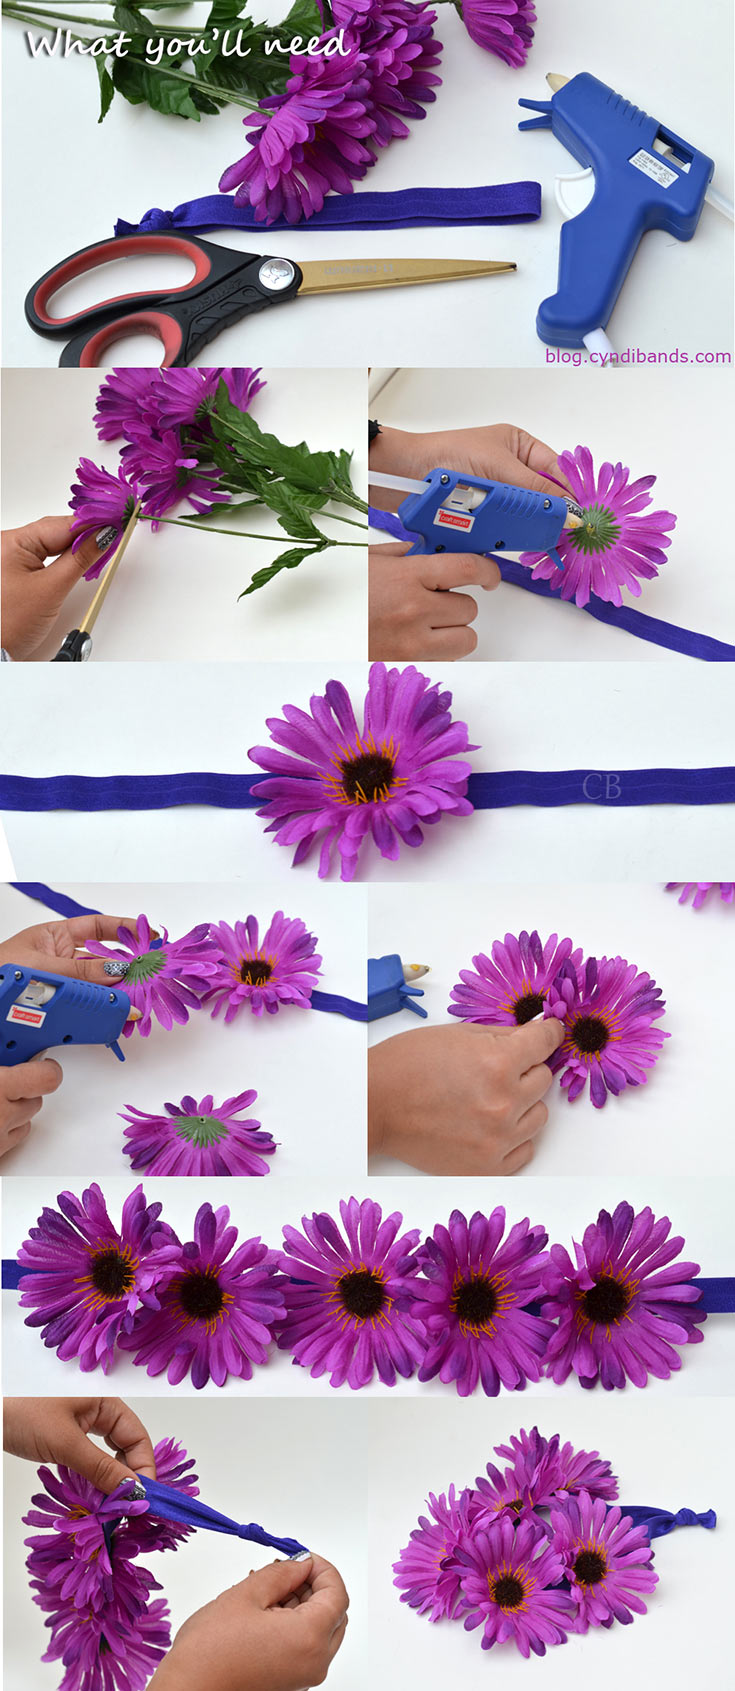 Make Your Own Flower Headbands Step-by-Step Tutorial